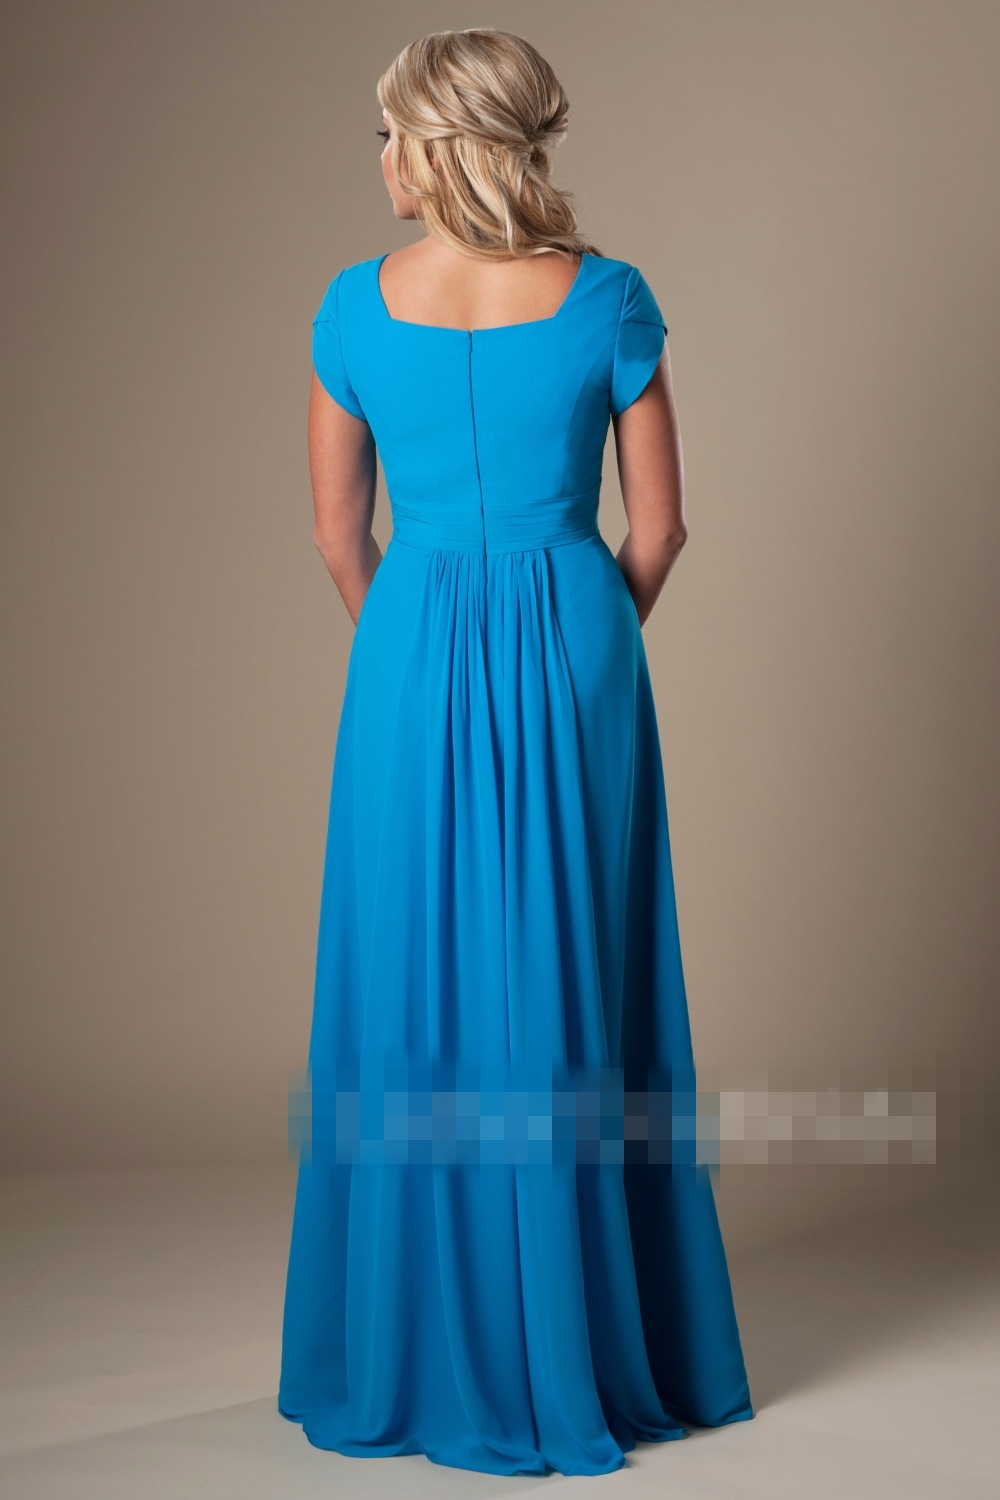 Simple blue chiffon beach modest bridesmaid dresses with sleeves simple blue chiffon beach modest bridesmaid dresses with sleeves floor length elegant women formal wedding guests dresses cheap in bridesmaid dresses from ombrellifo Images